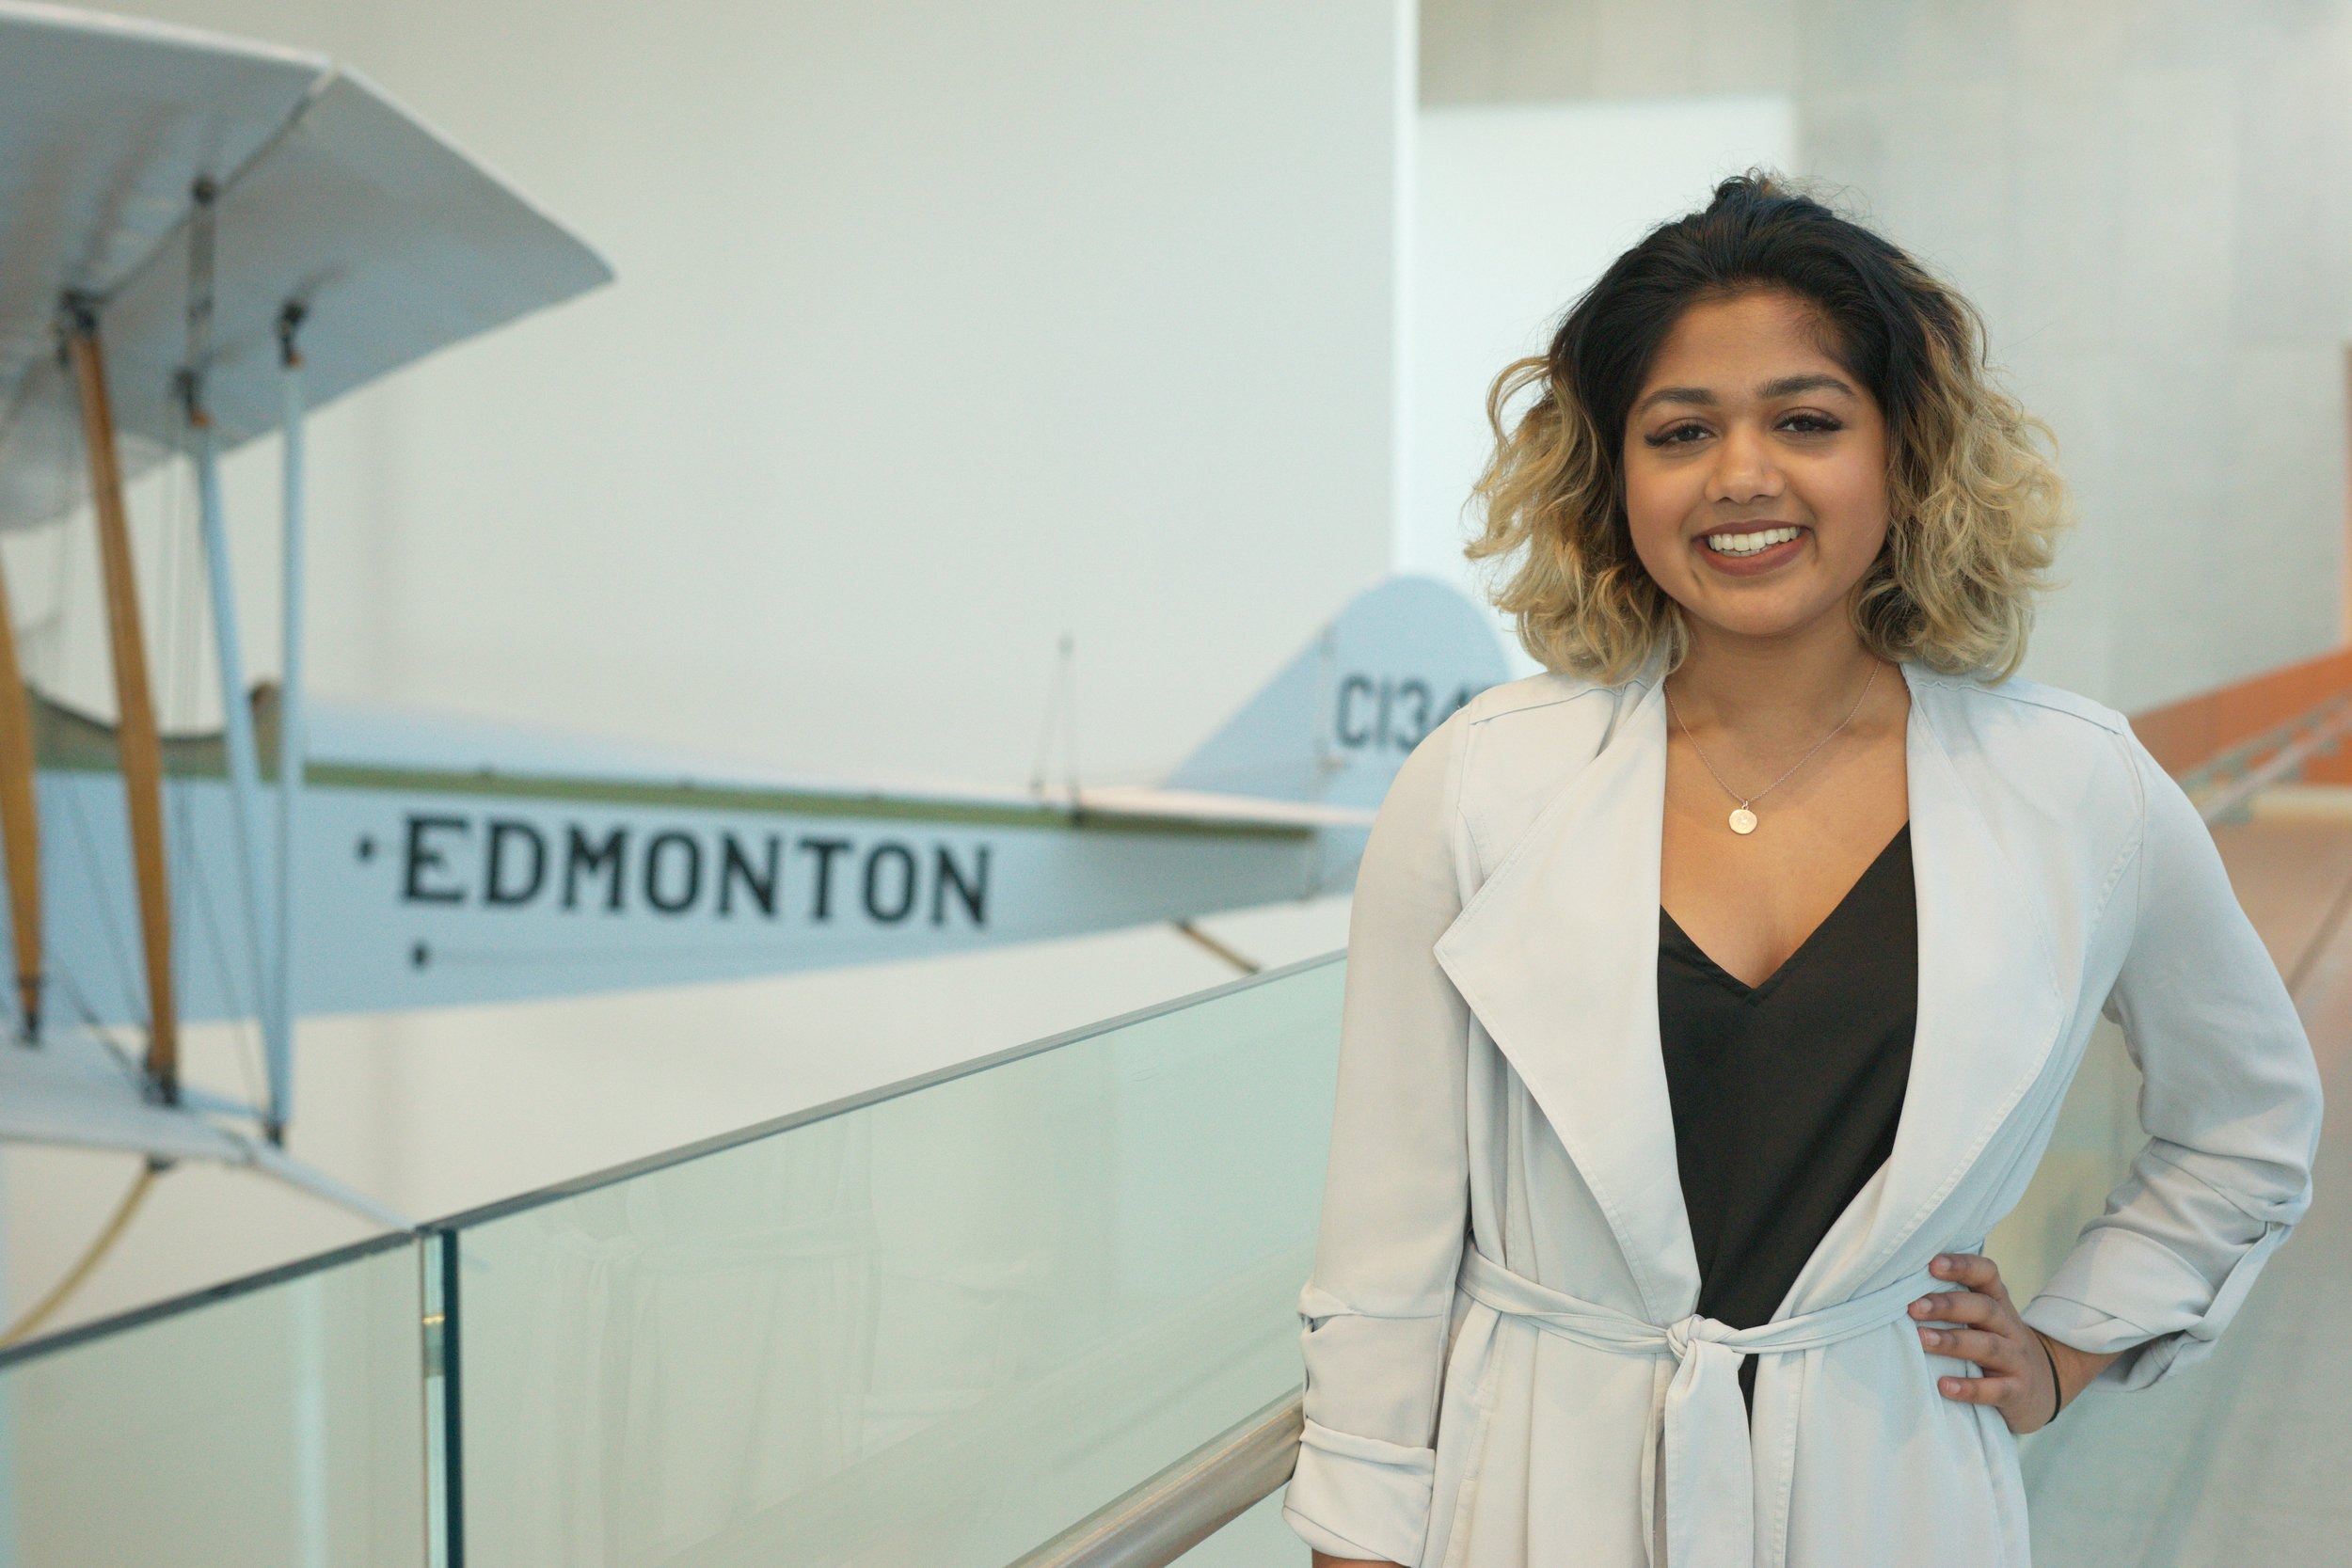 Rea Naidoo  Vice-President Academic  Hi! My name is Rea and I'm your VP Academic for AIBC 2019. Having been on multiple sides of a case competition from participating to judging to organizing, I've seen the good, the bad, and the ugly of cases but strive to bring the good, the better, and the best to this competition. I'm currently a Marketing major at the Alberta School of Business and an active member of my community, both in school and out of it. In my free time, you can find me scrolling through memes or hitting up a local restaurant!